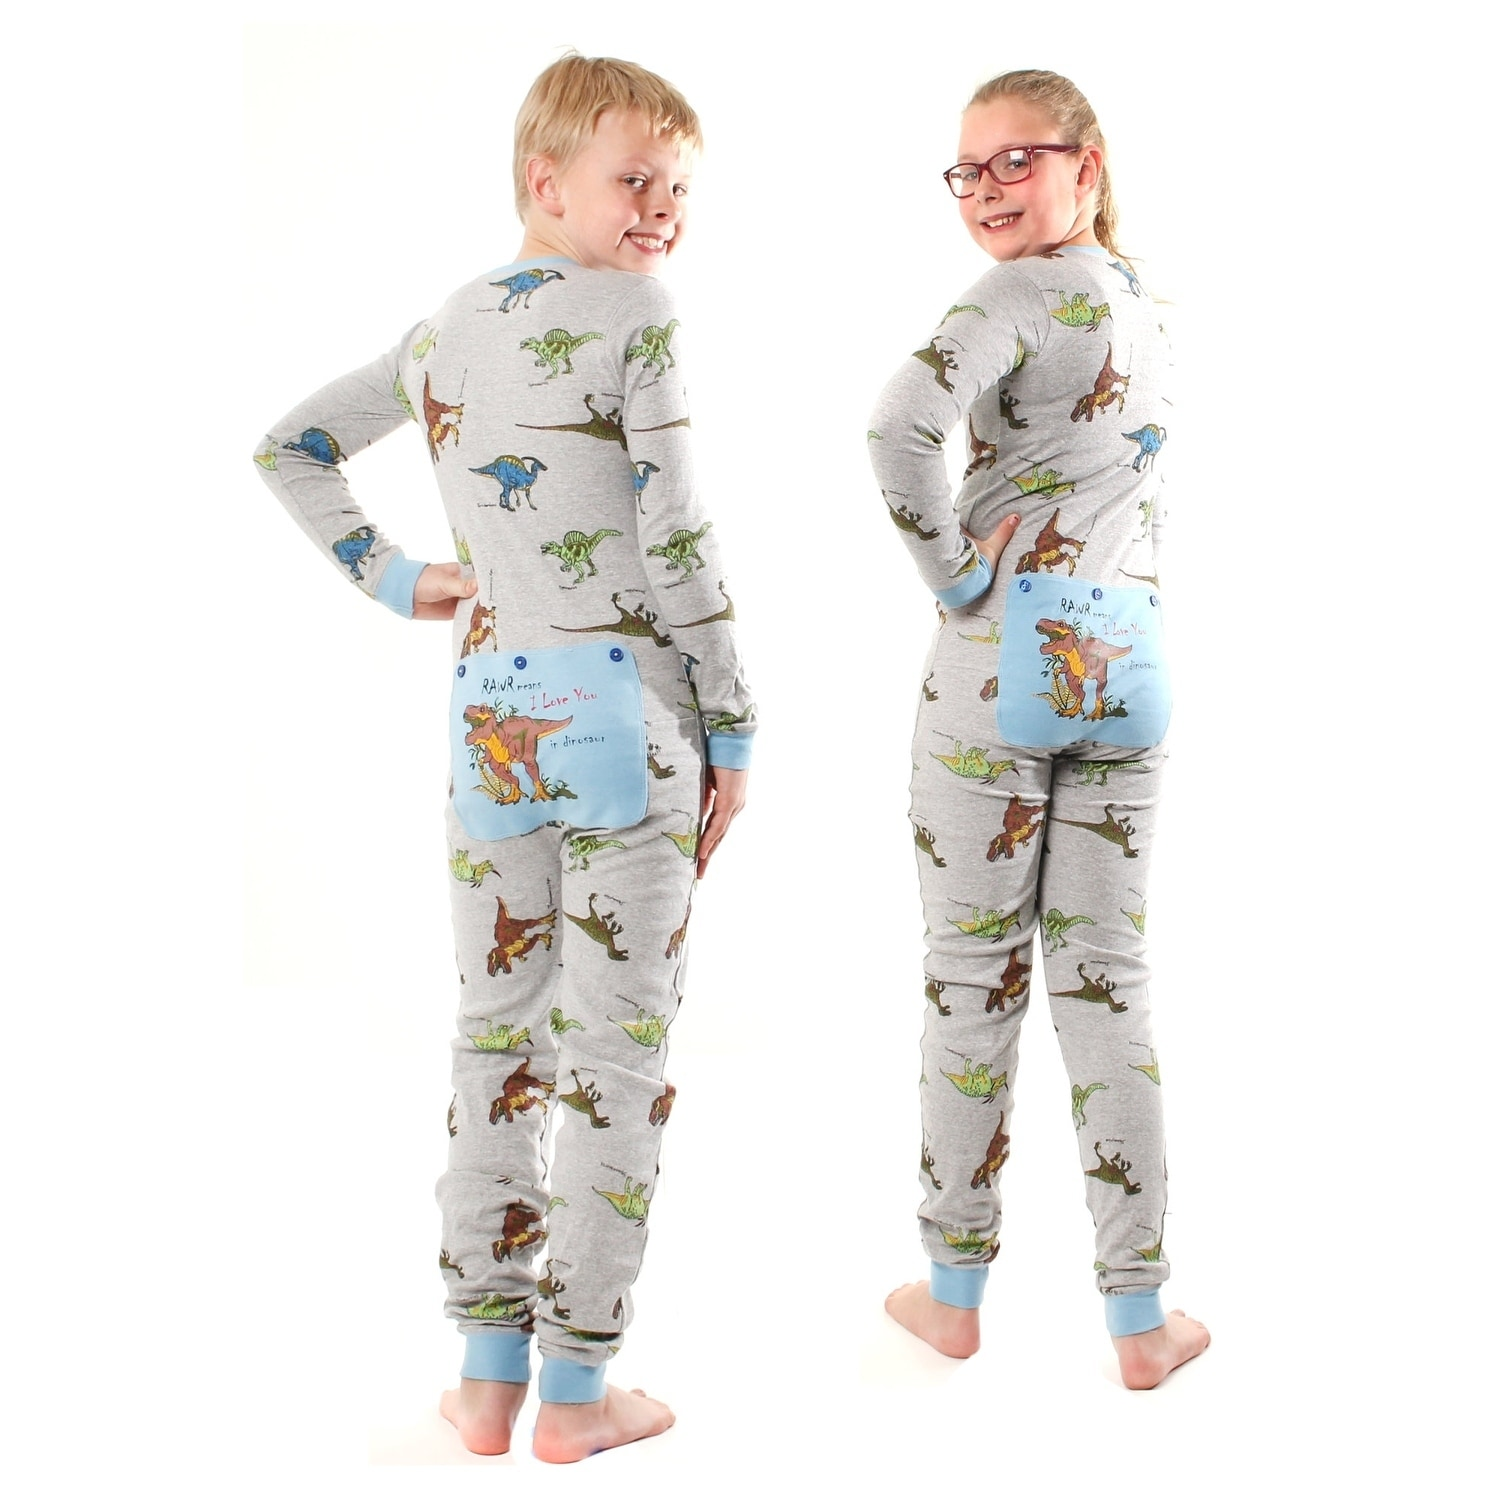 72b7f0b93 Buy Boys' Pajamas Online at Overstock | Our Best Boys' Clothing Deals